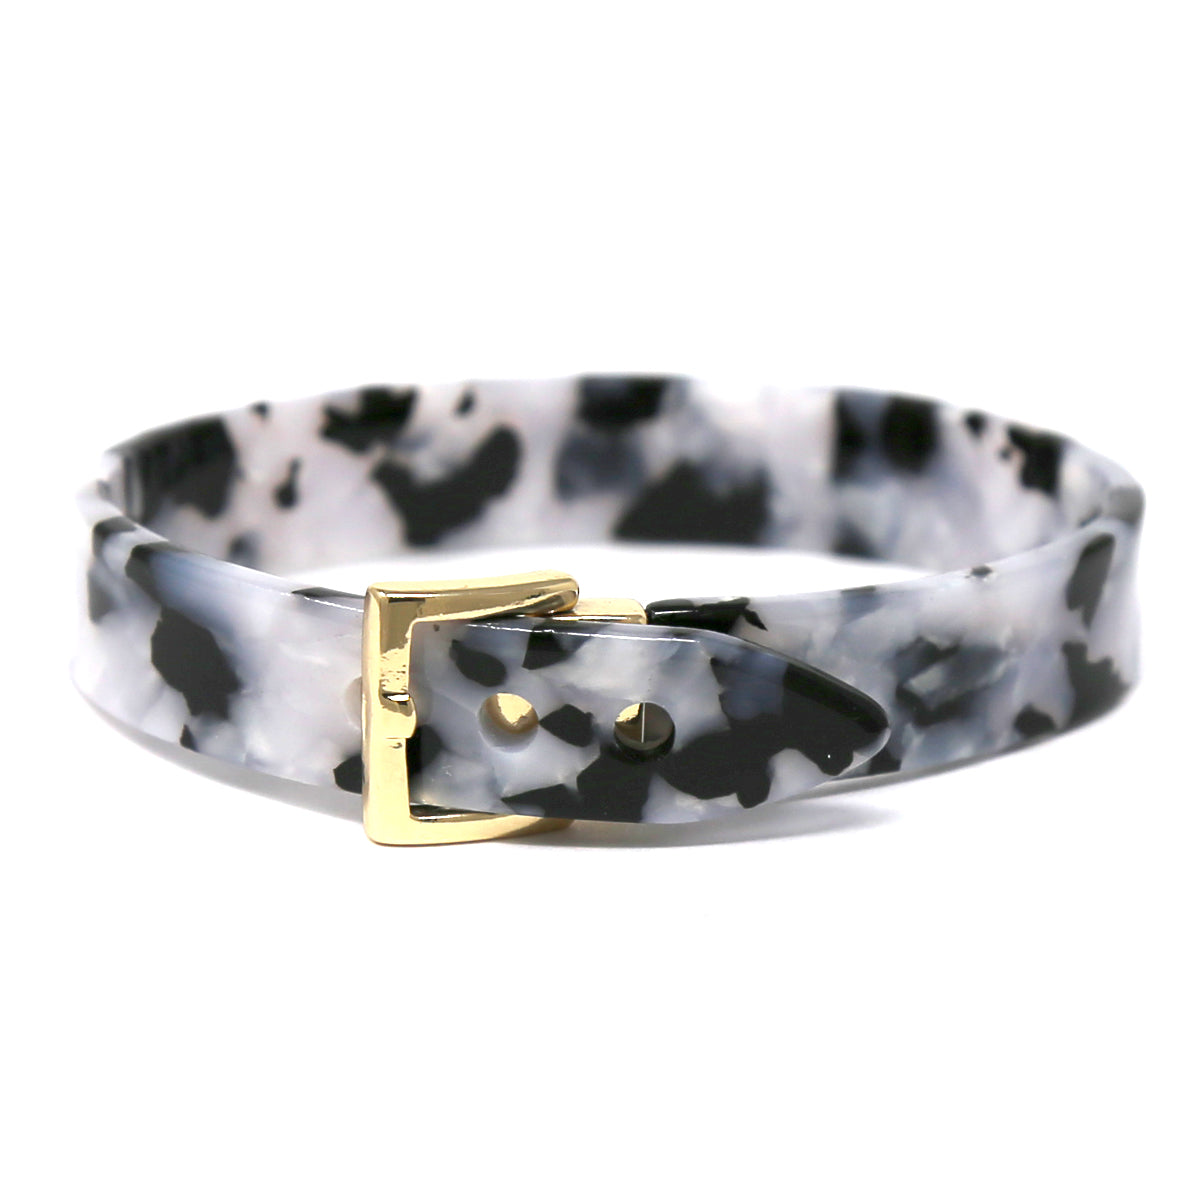 Belt Shape Acetate Bangle Bracelet